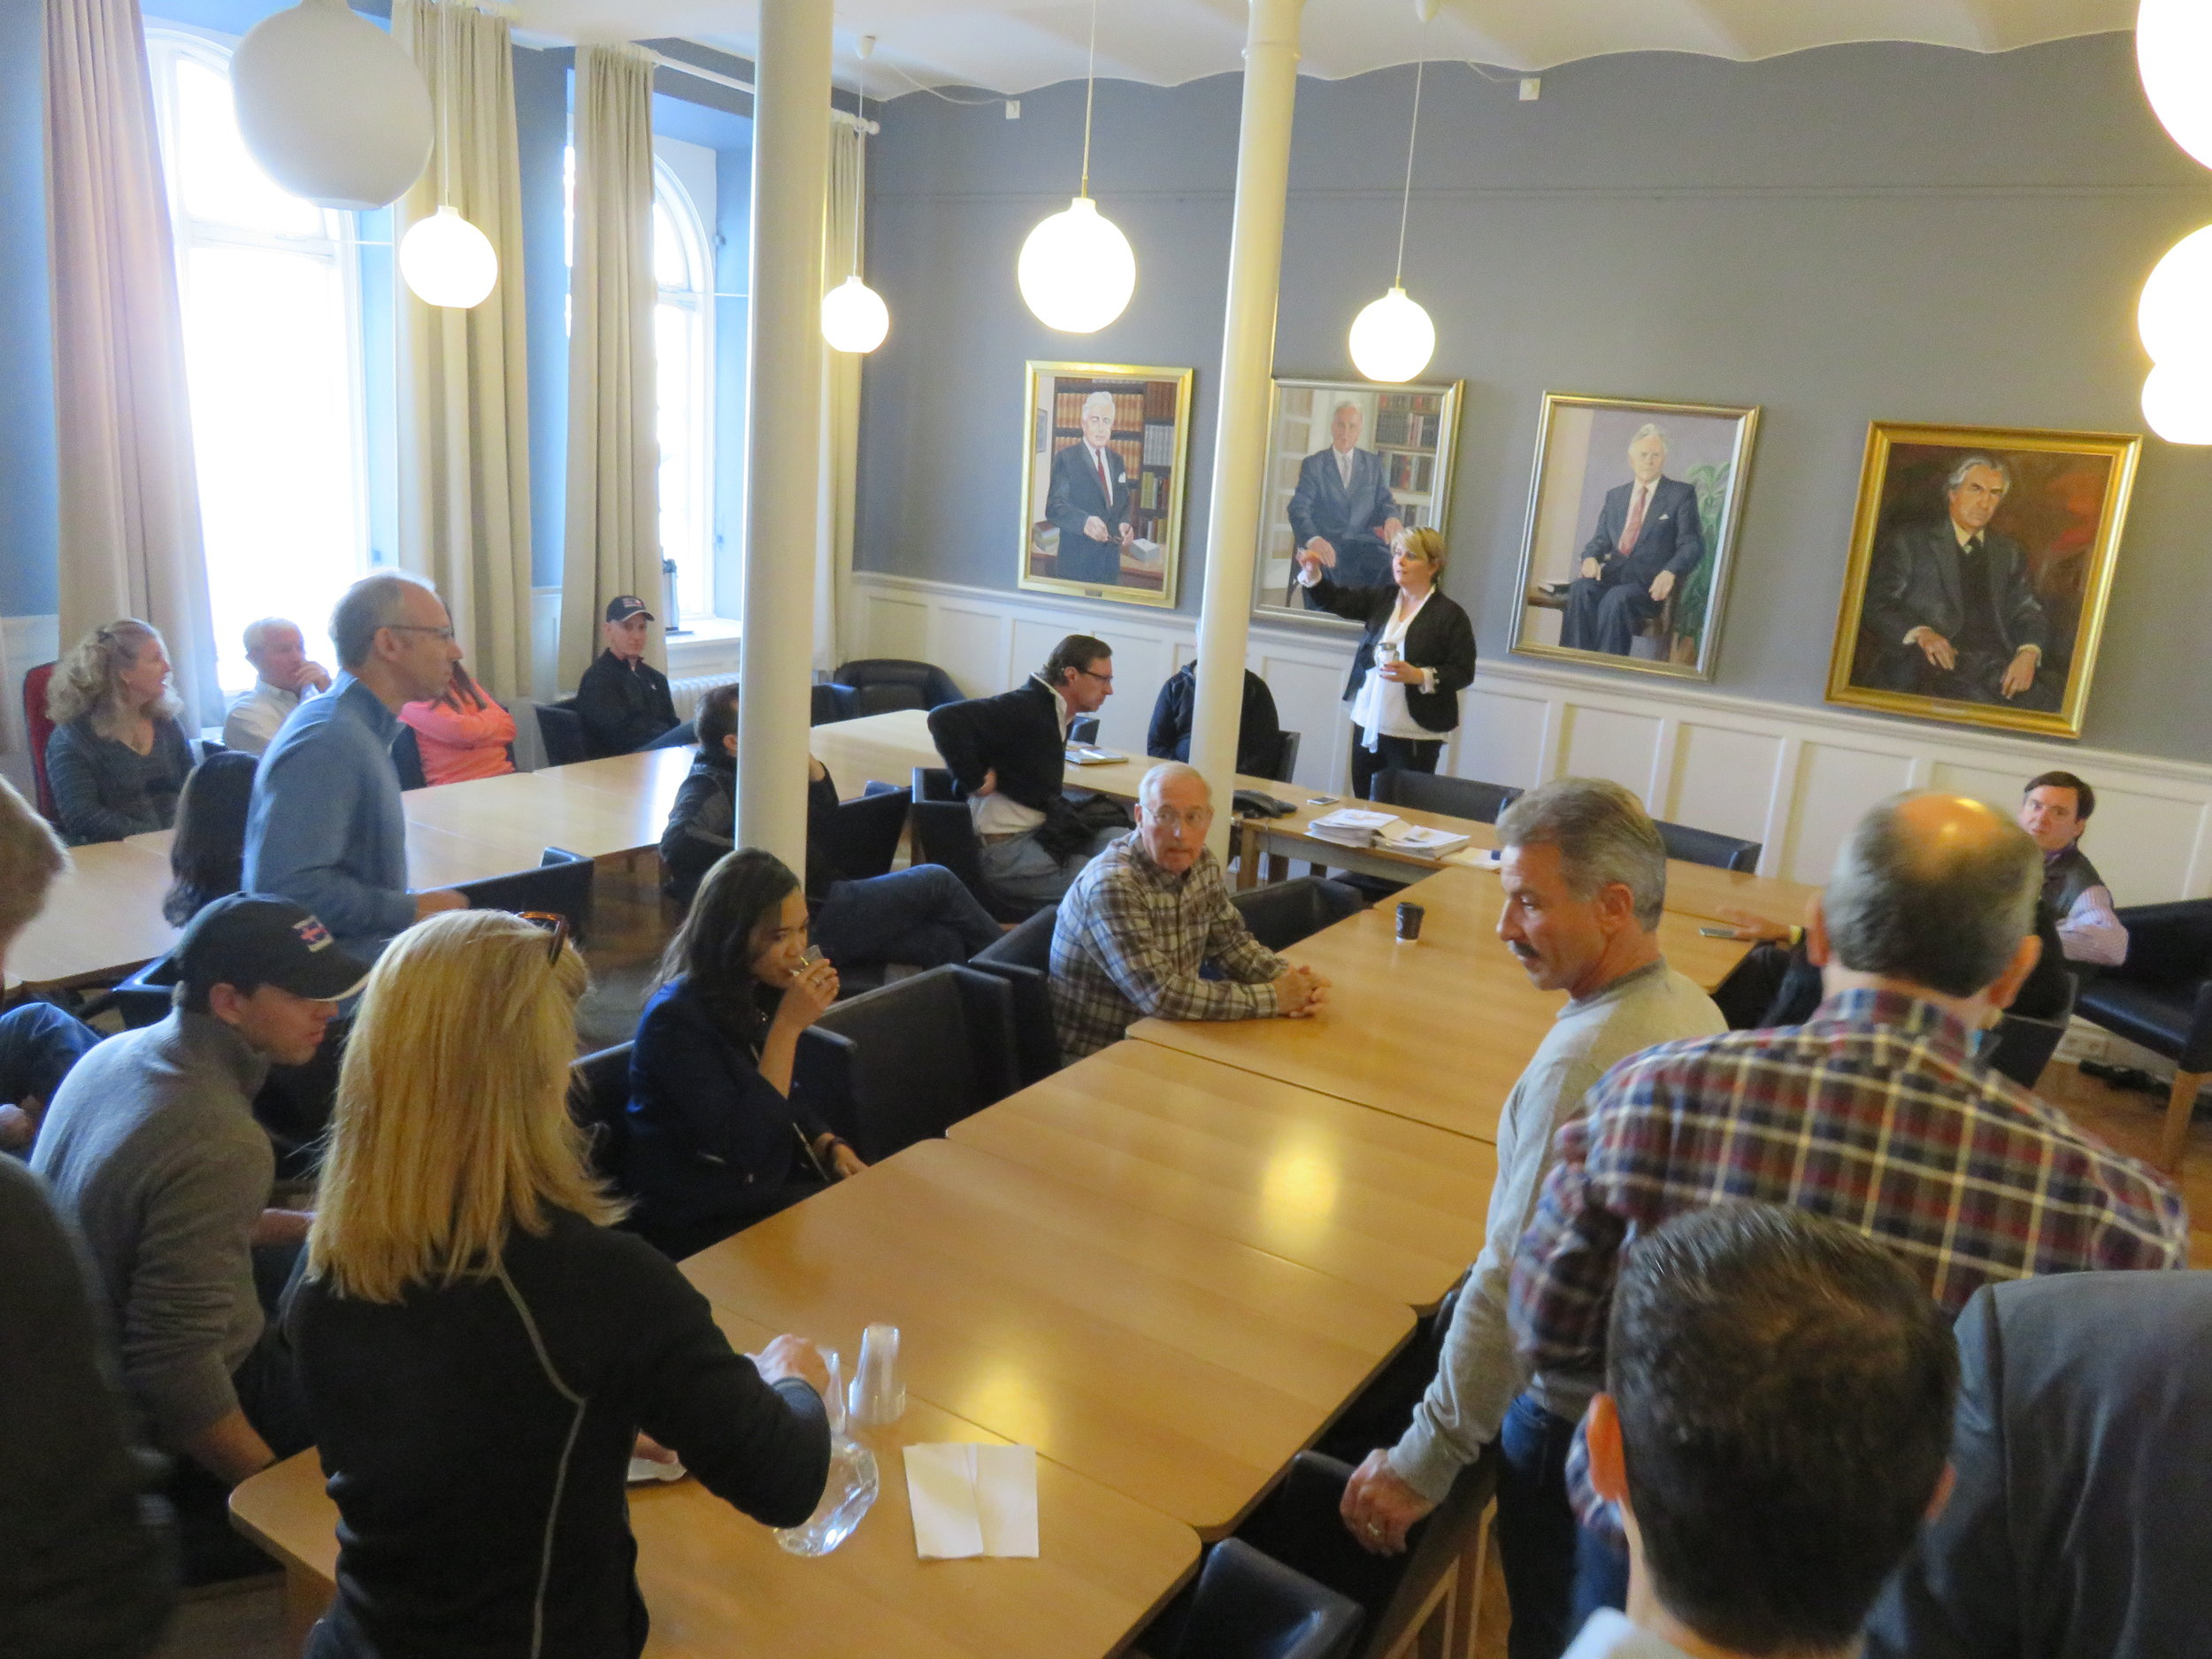 Town hall meeting with Iceland's parliament leadership.